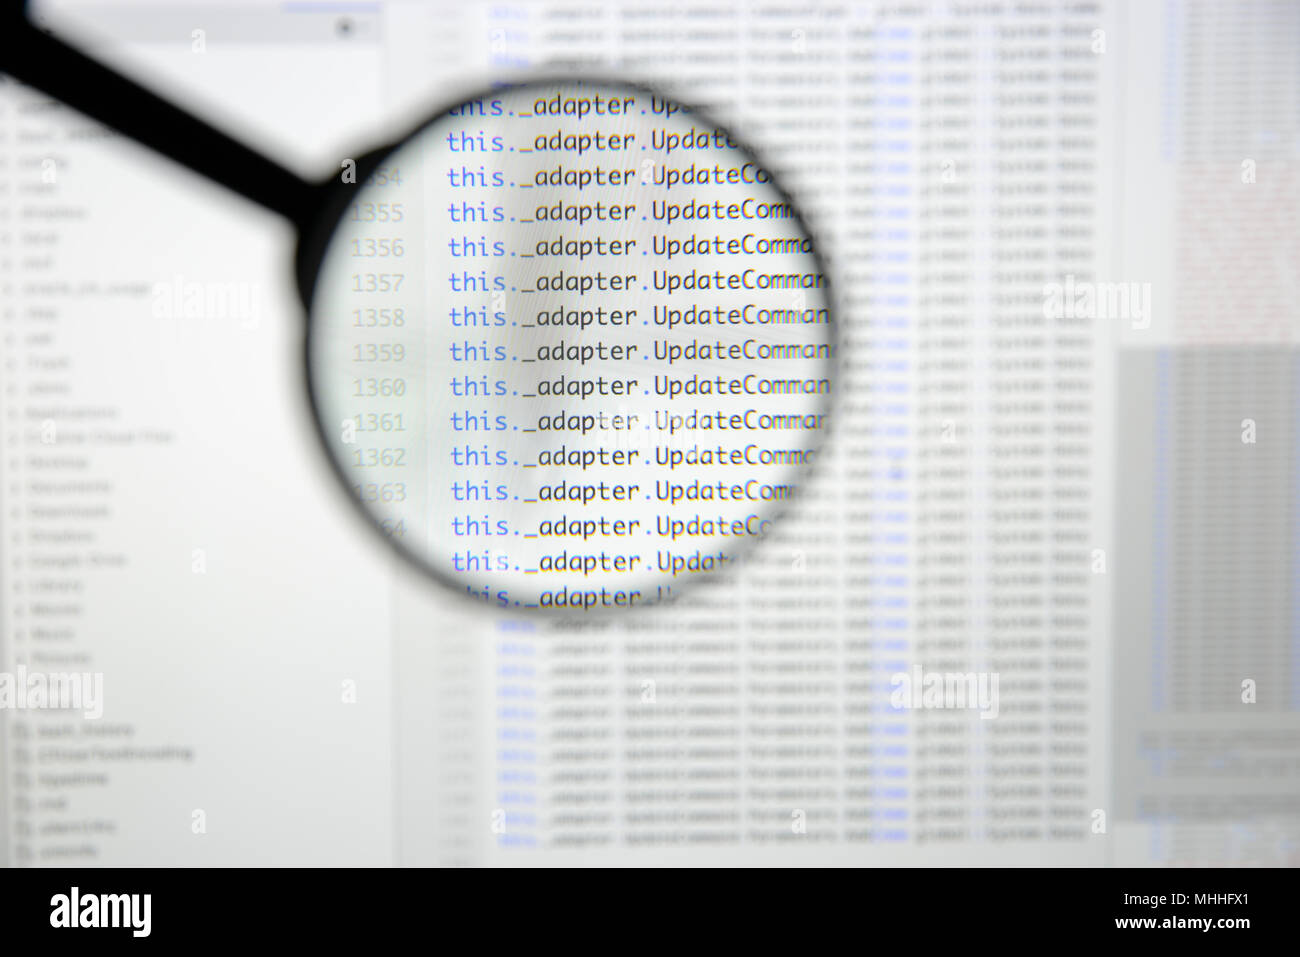 Real c# code developing screen. Programing workflow abstract algorithm concept. Lines of c# code visible under magnifying lens. Stock Photo